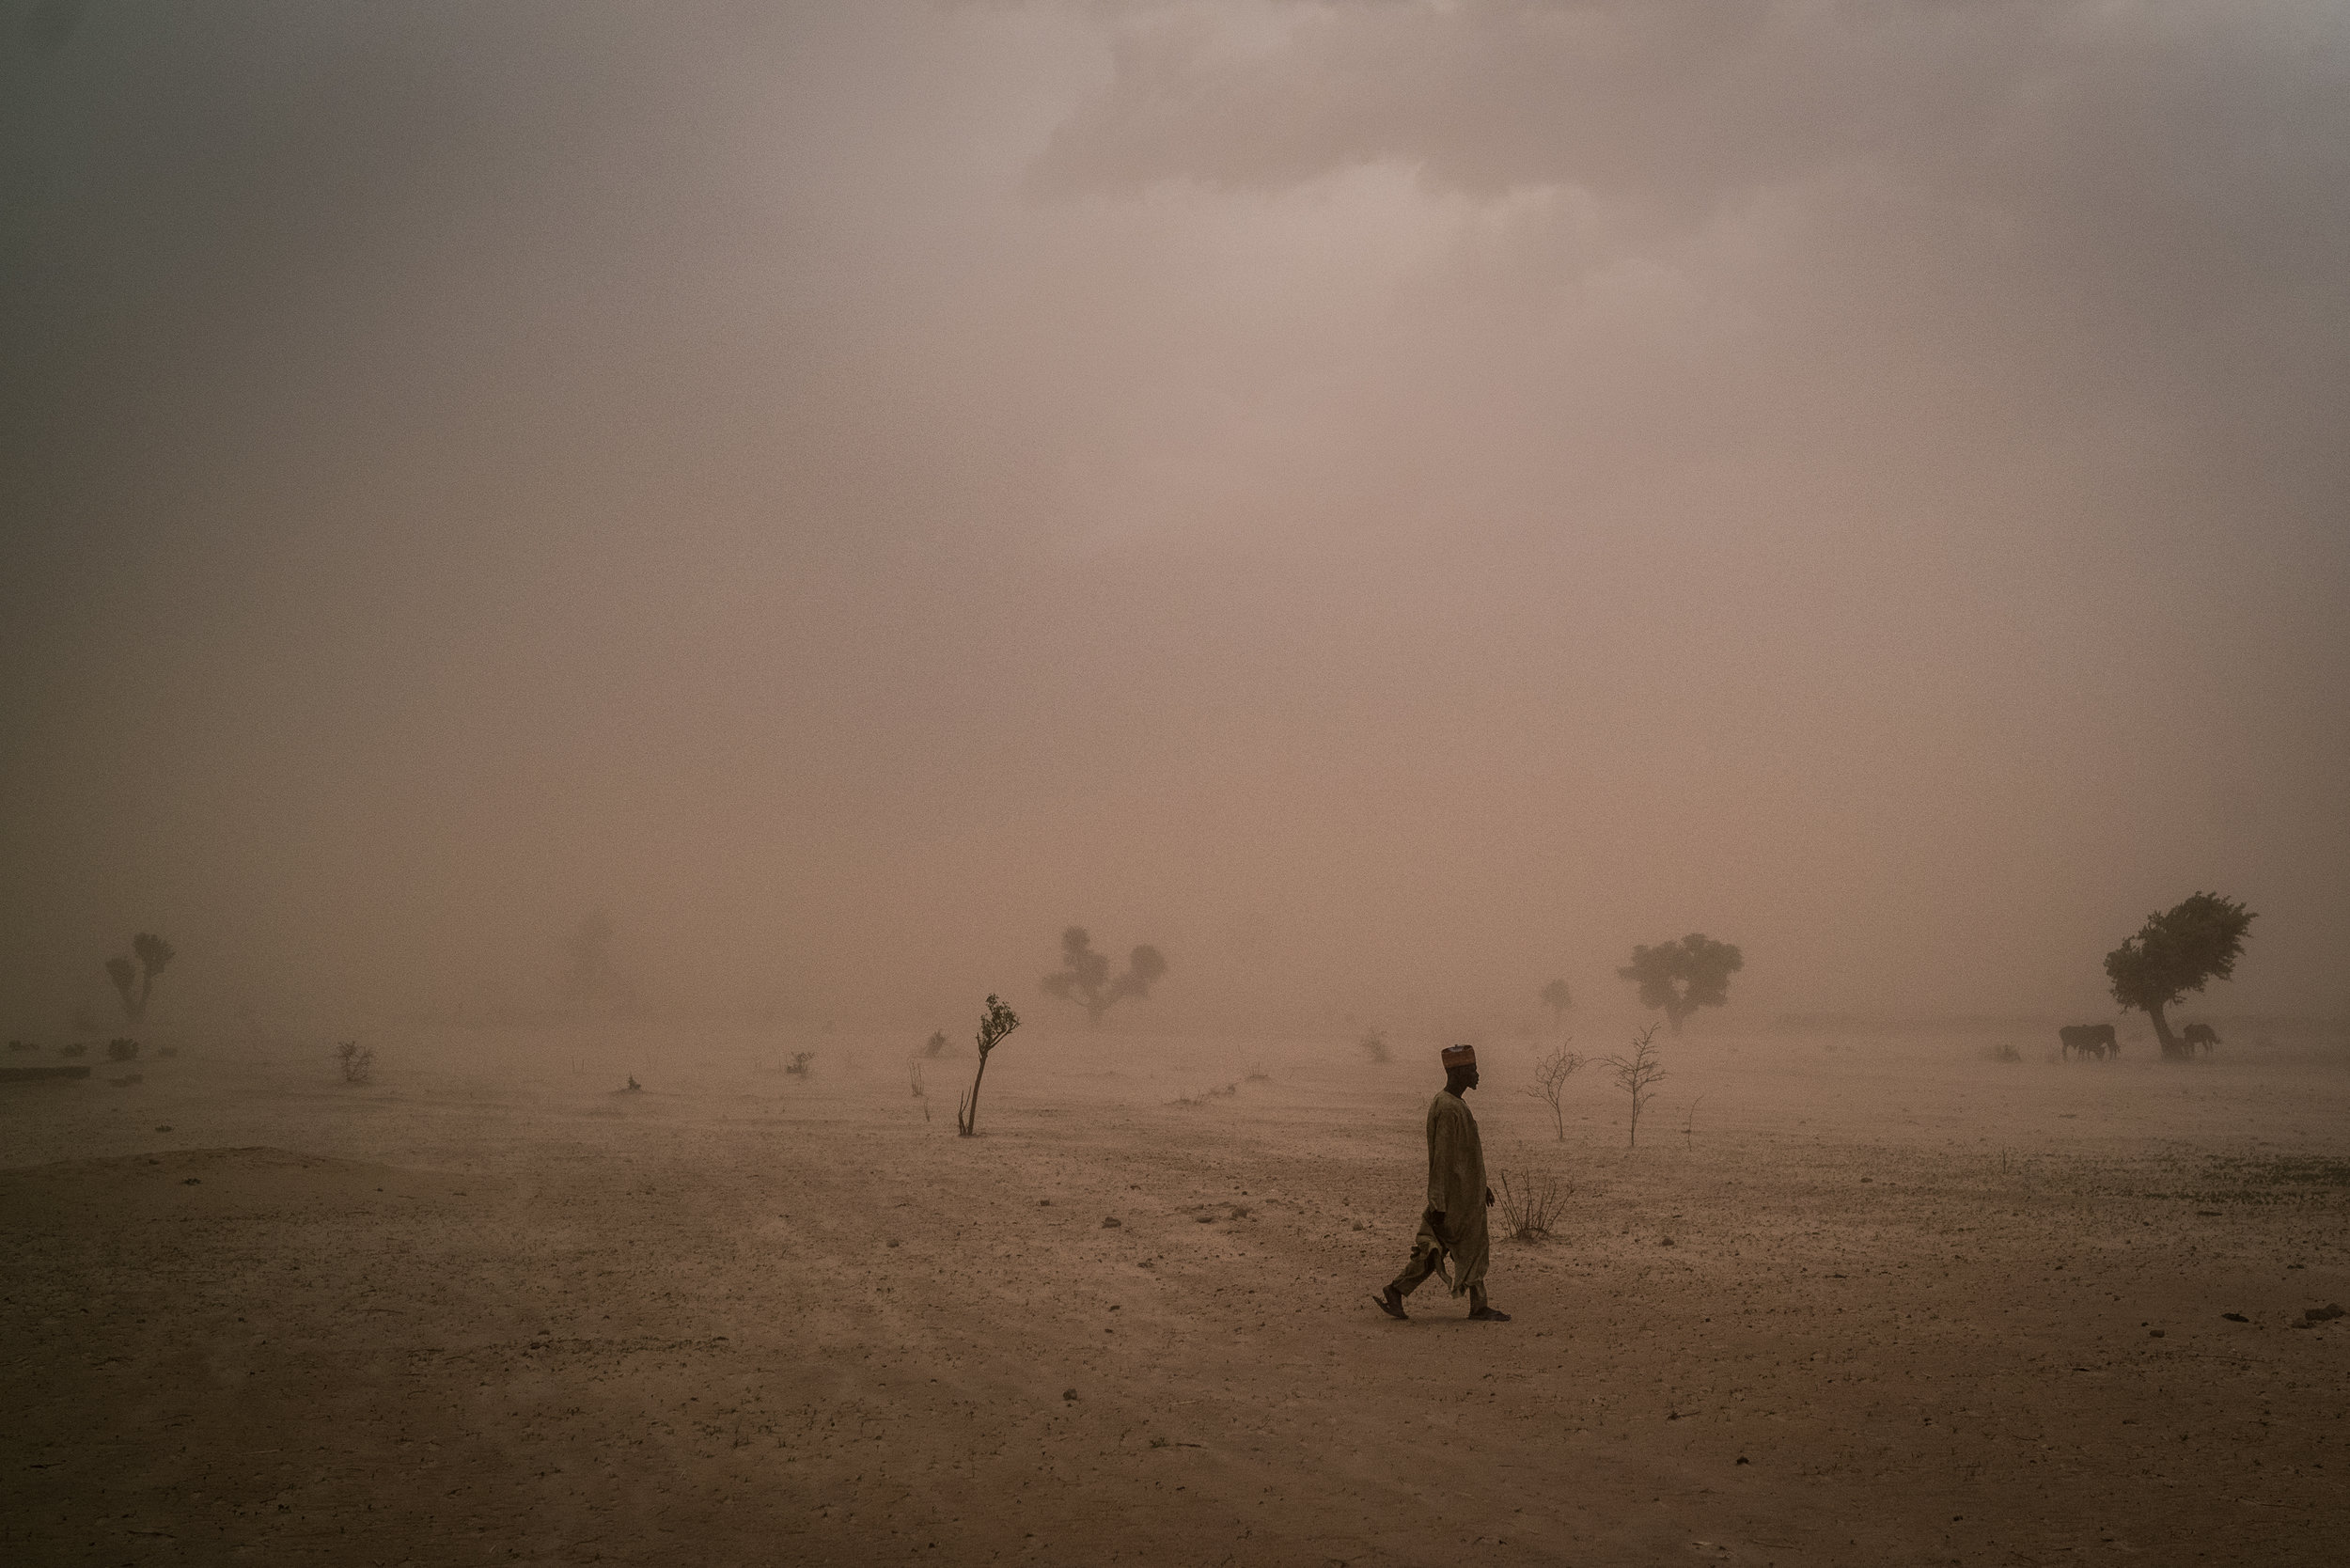 A displaced man walks across the parched land outside of Maiduguri, Nigeria.